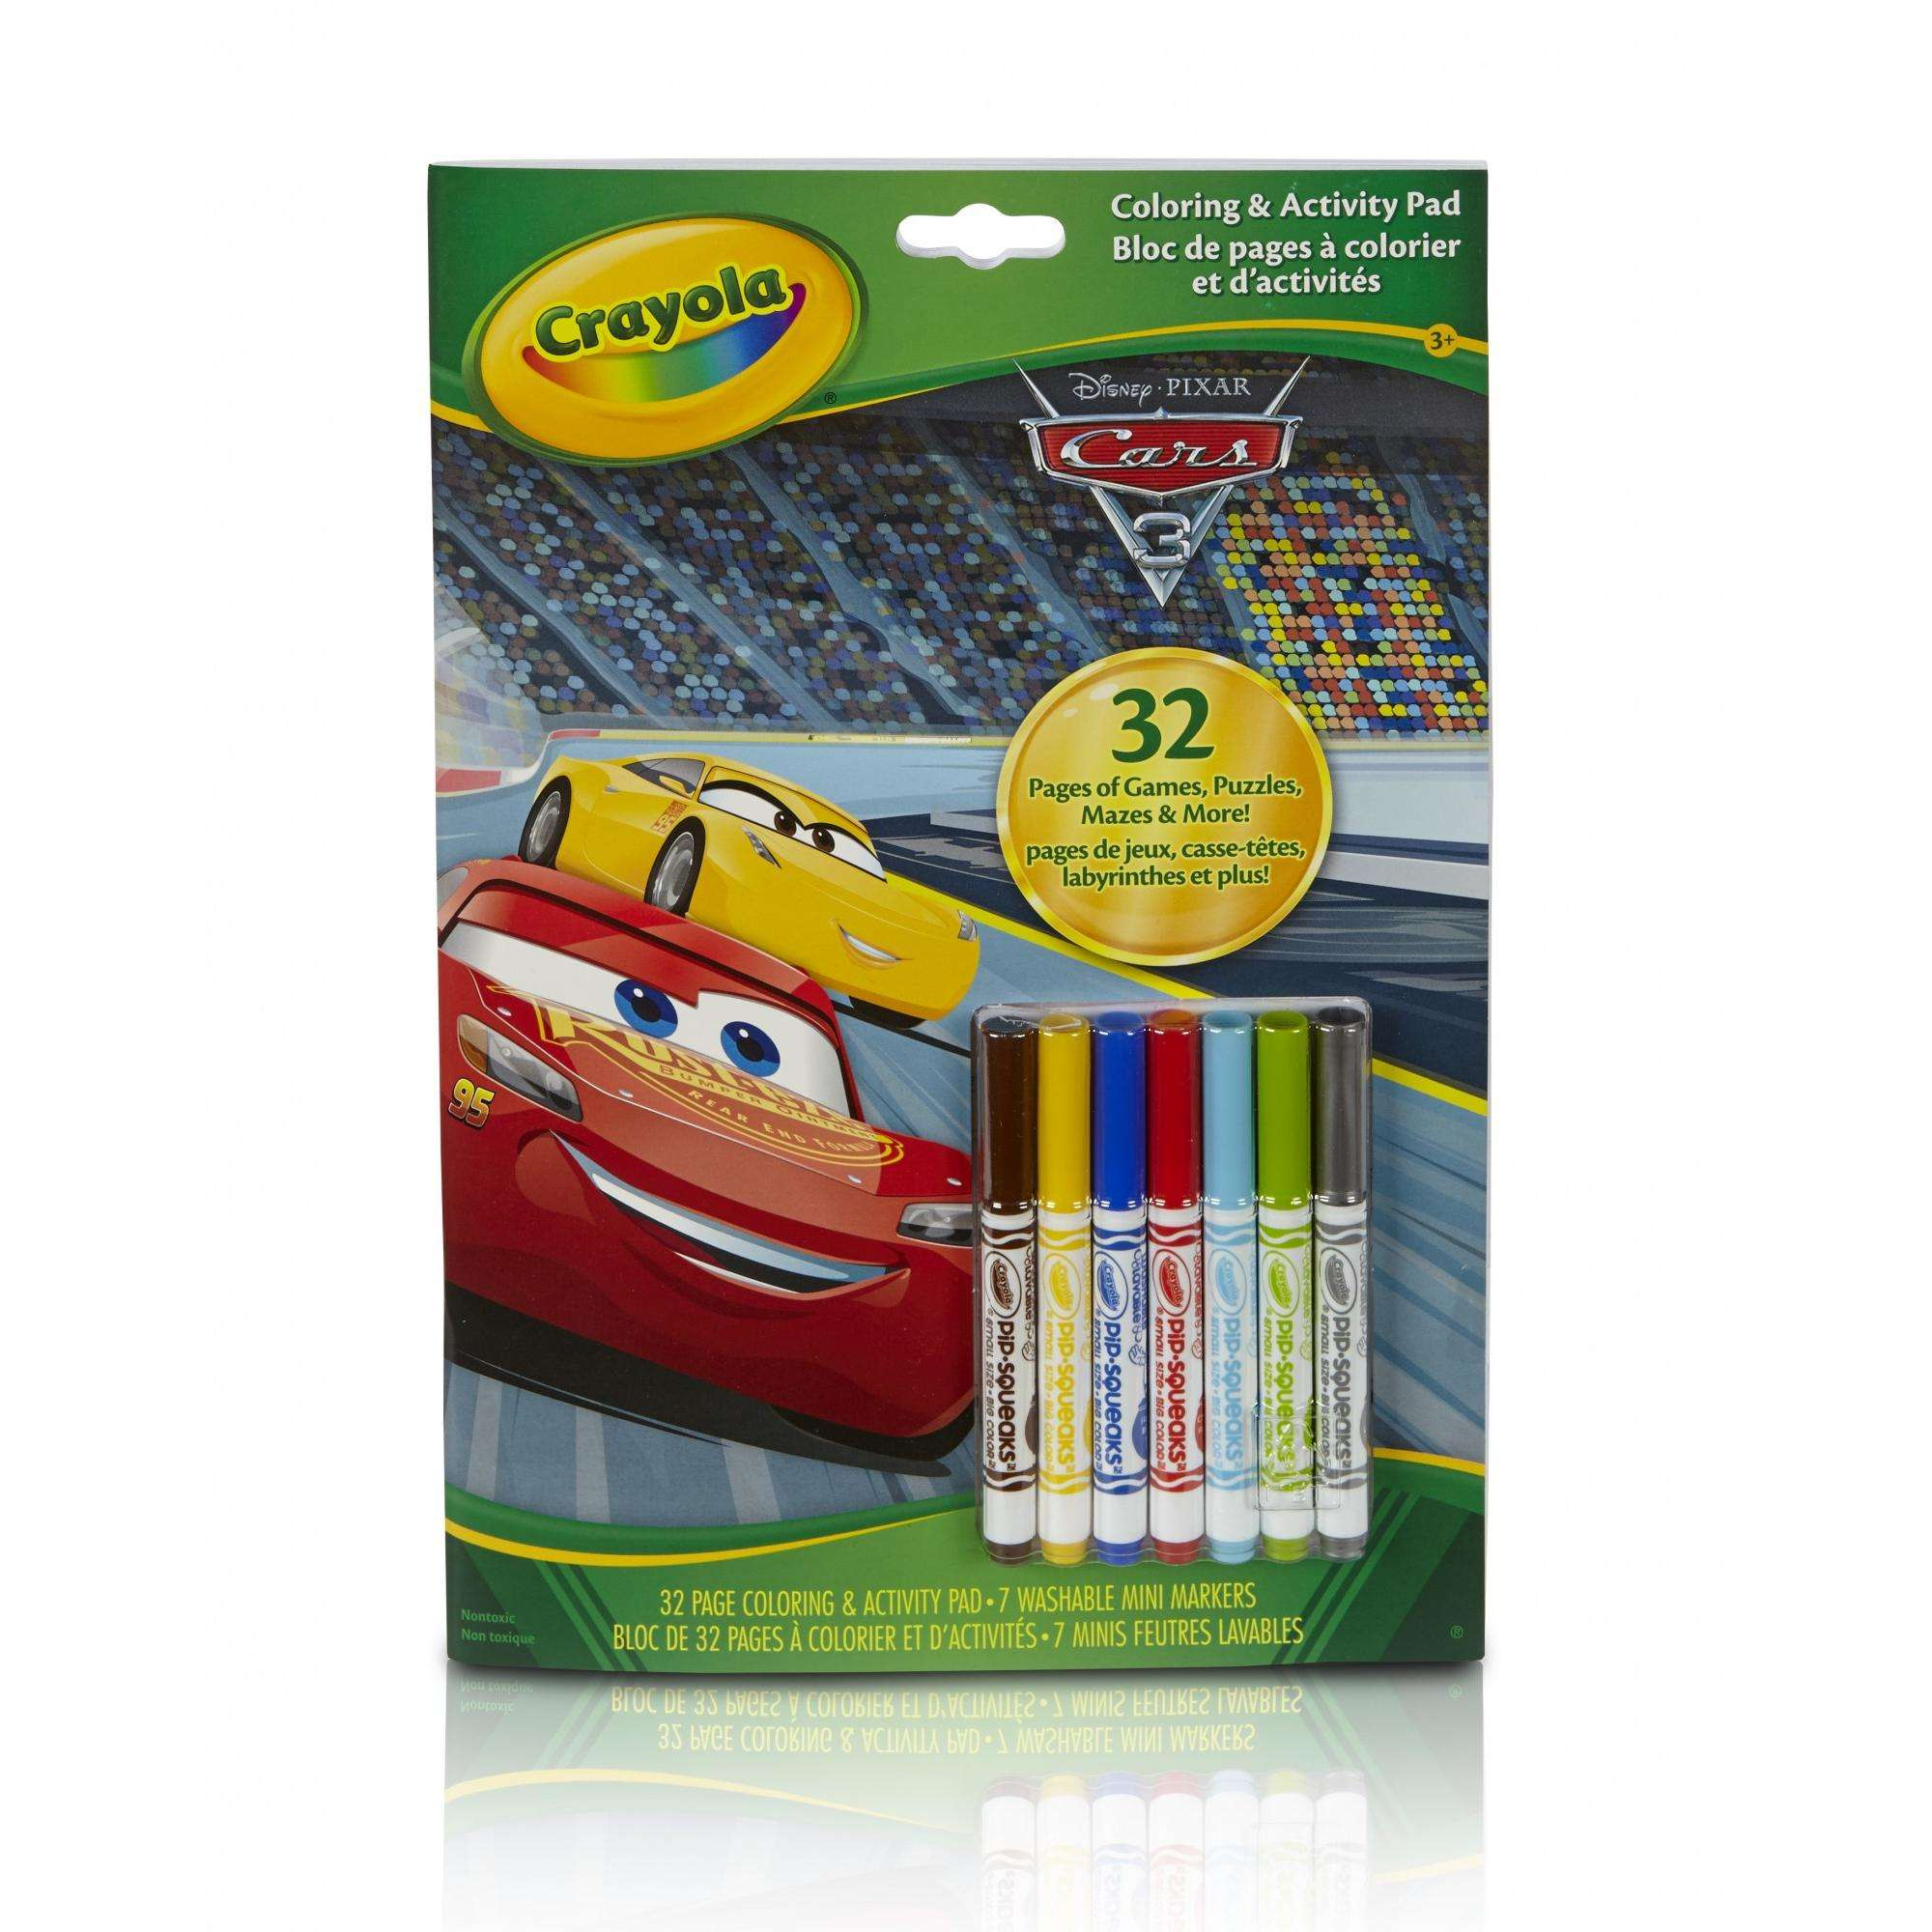 Crayola Cars Coloring & Activity Book, 32 Pages, 7 Mini Markers